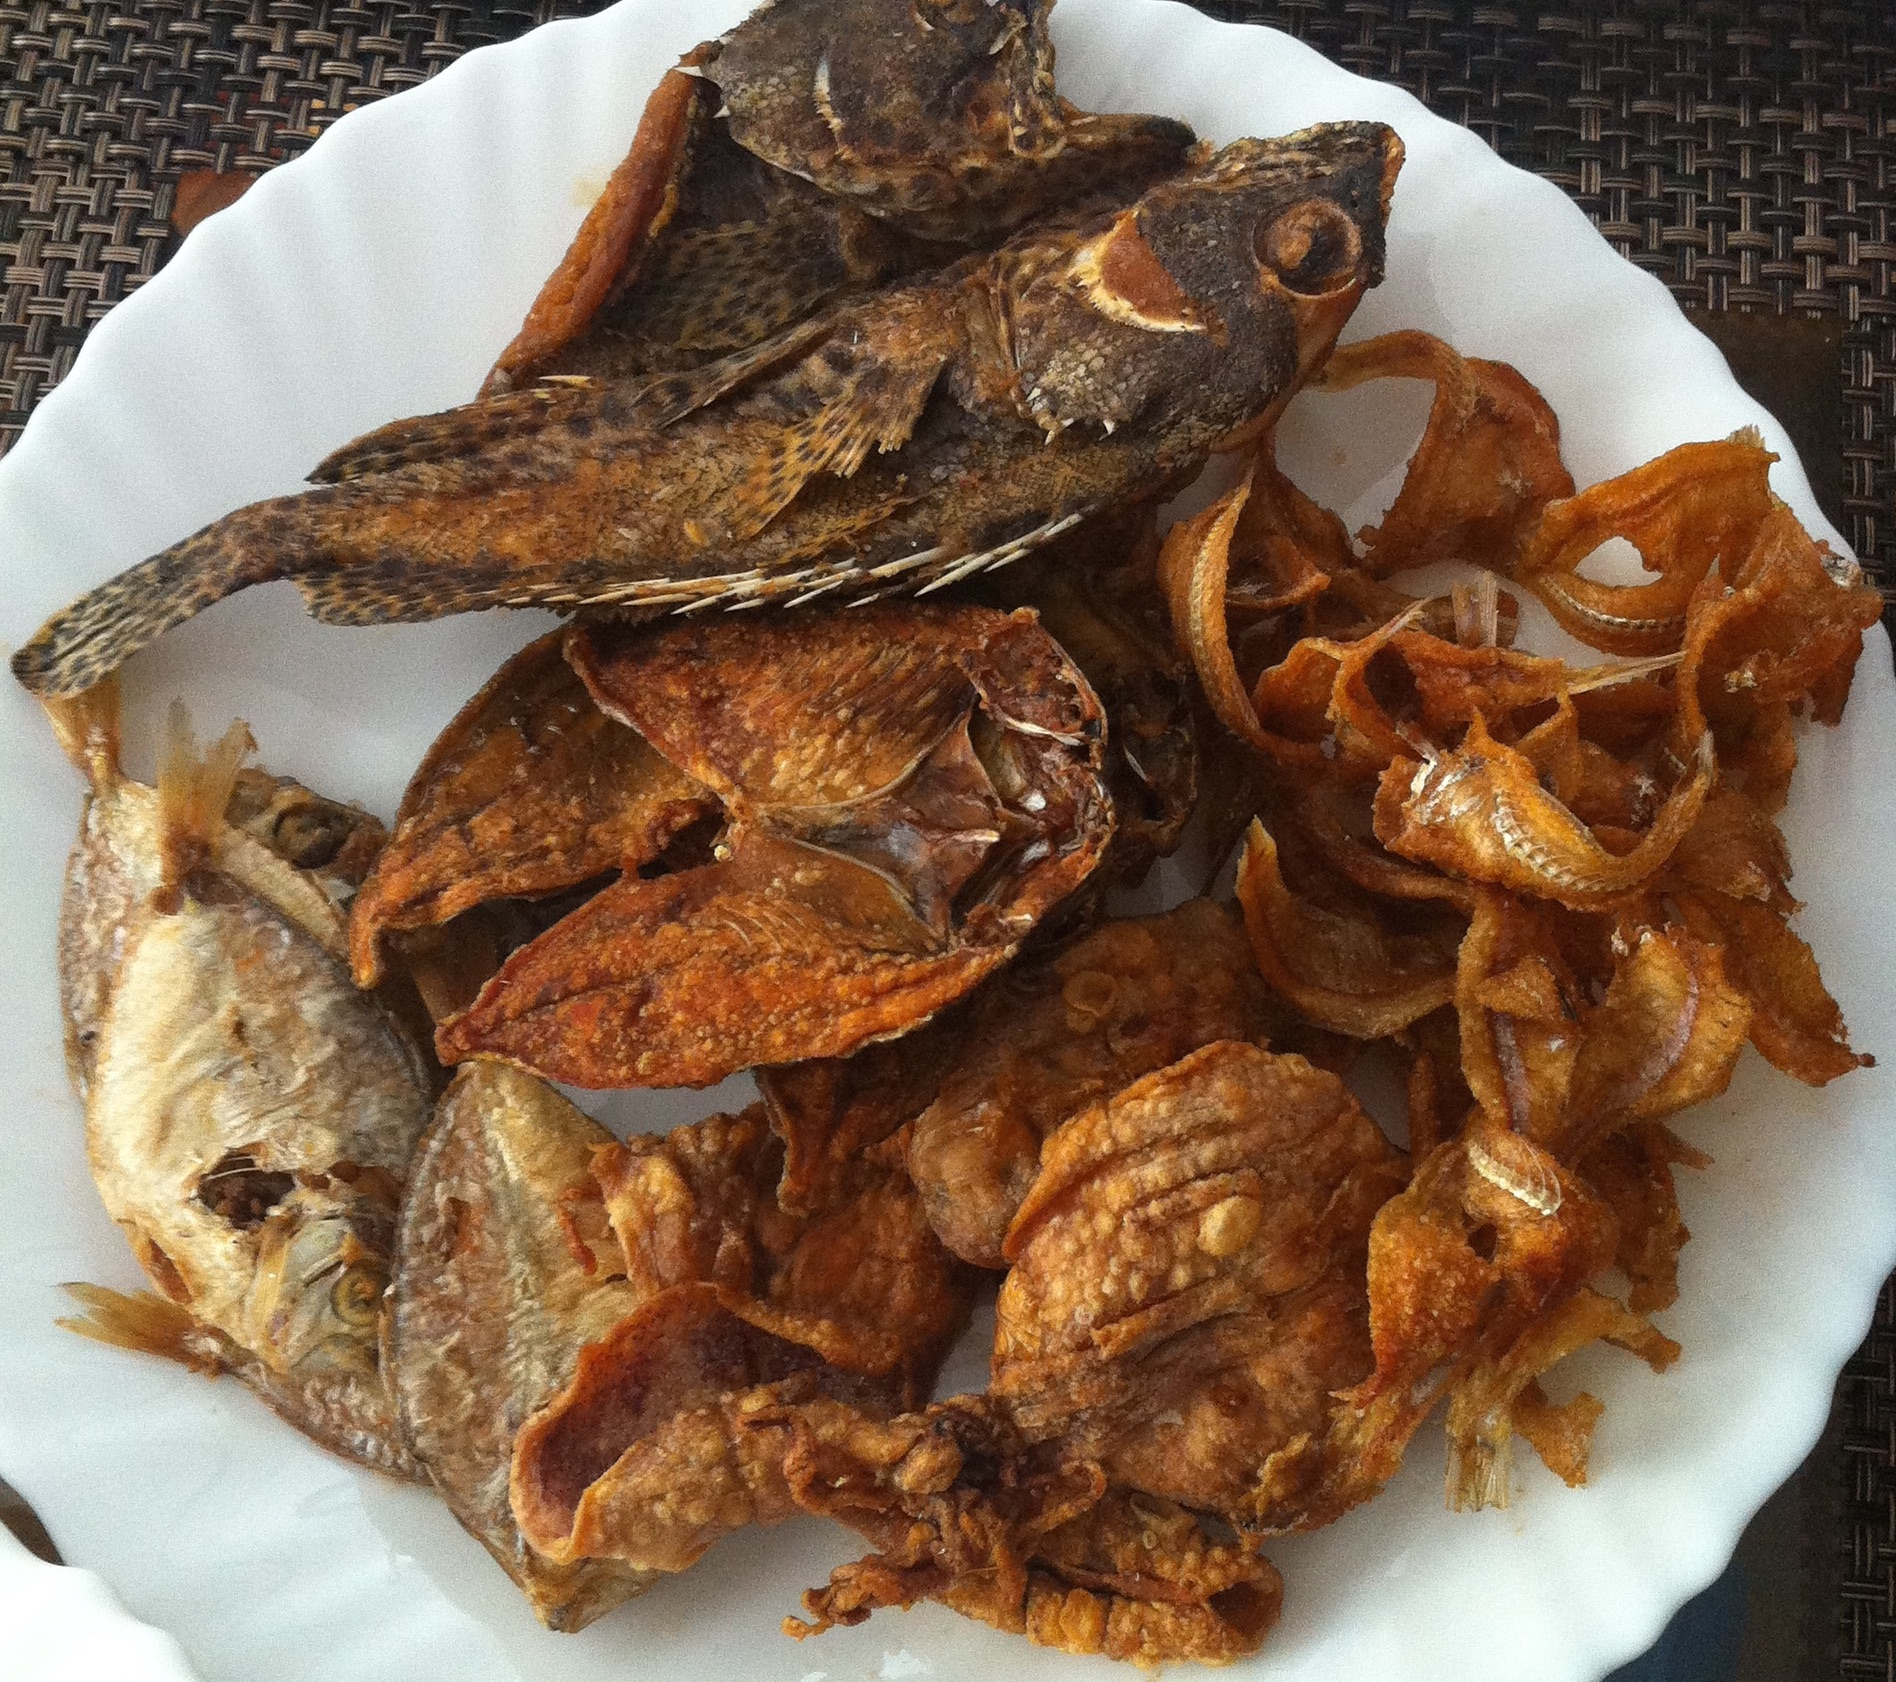 A variety of dried fish and squids. These are delicious dipped in vinegar sauces and/or grilled.